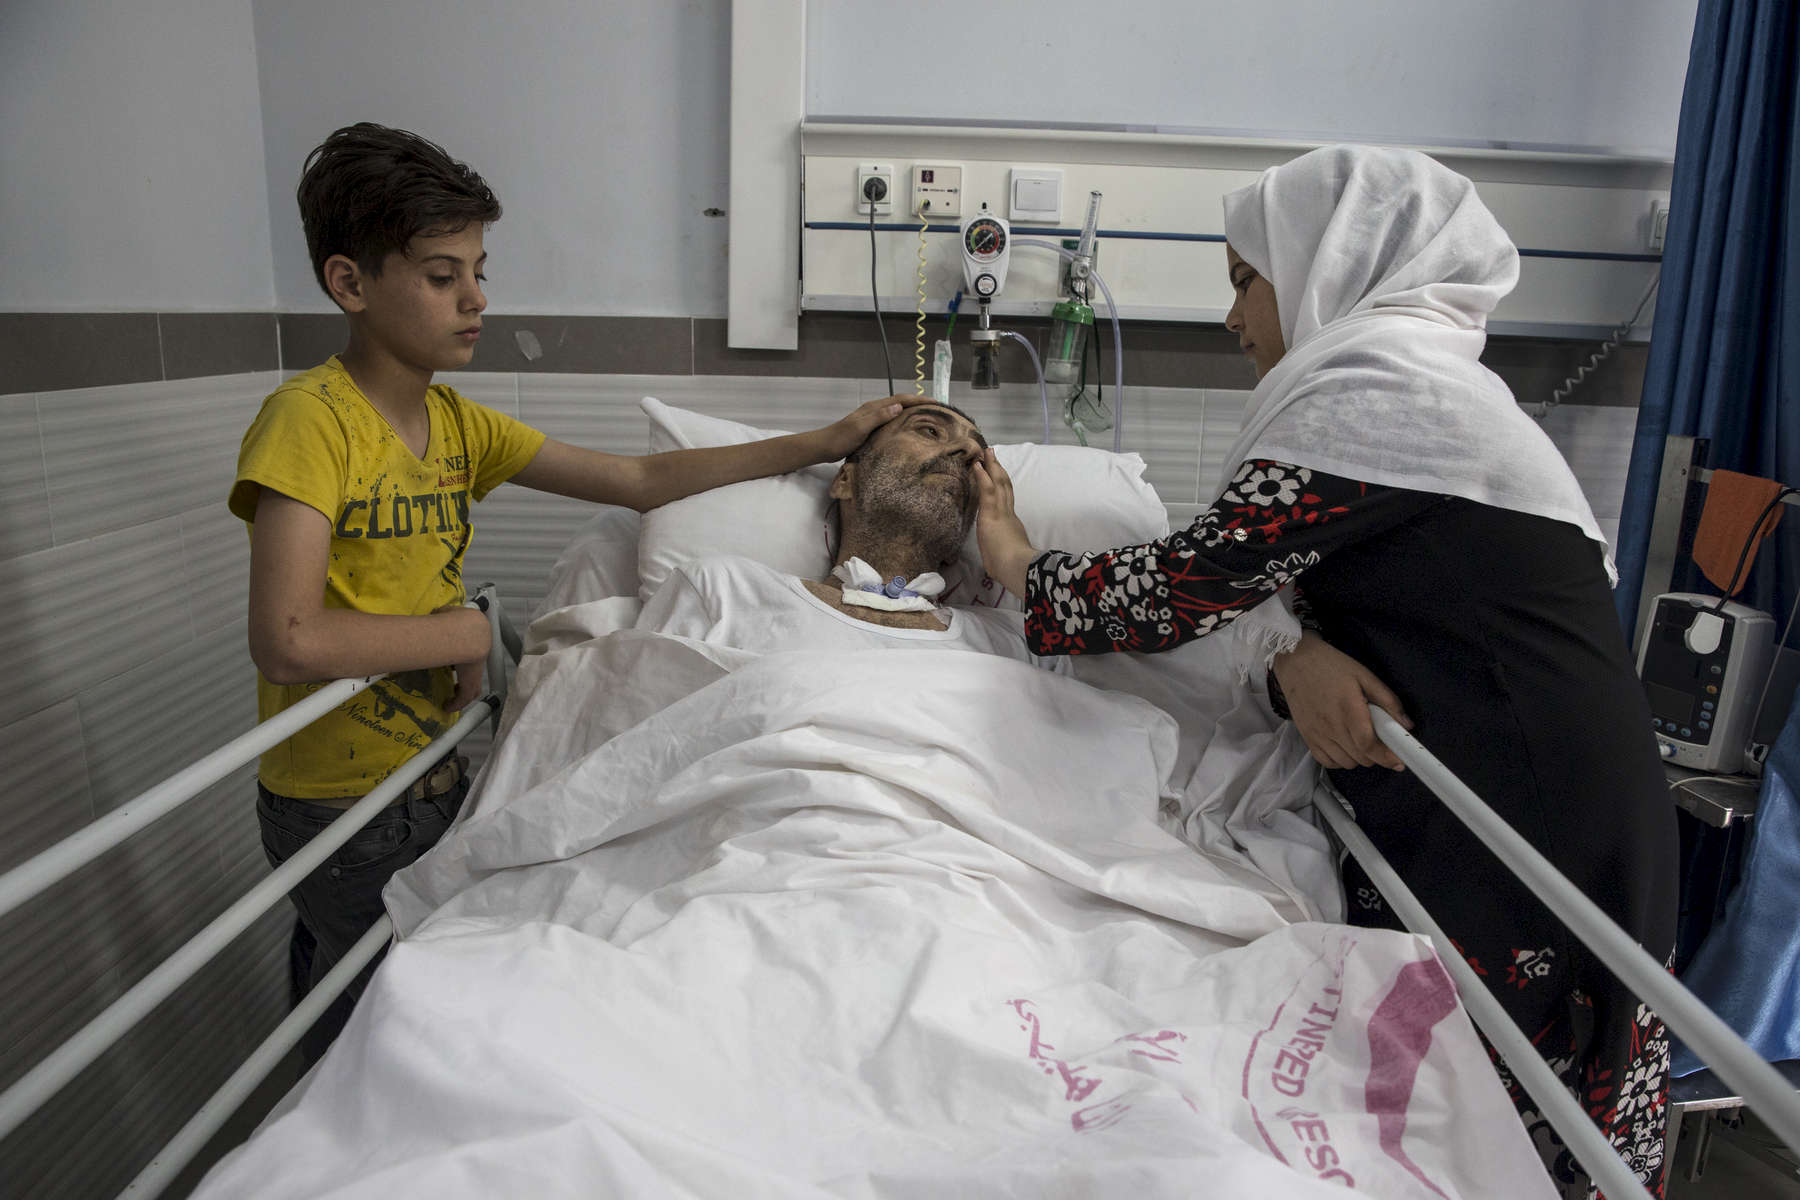 GAZA STRIP- MAY 19,2018 : Rashad Al-Baba, 58, shot twice by Israeli forces is cared for by his grand children at the Red Crescent Rehabilitation Center of Al-Amal on May 19,2018 in Gaza strip. He was injured on March 30th when he arrived to the protest near Rafah looking to protect his grand children who went there without his knowledge. After the injury, Rashad suffered a heart attack, spending 27 days in the intensive care unit. The problems and complications affecting Gaza today are overwhelming. The world, seemingly accustomed to the suffering of the Gazan people turns a blind eye. (Photo by Paula Bronstein )